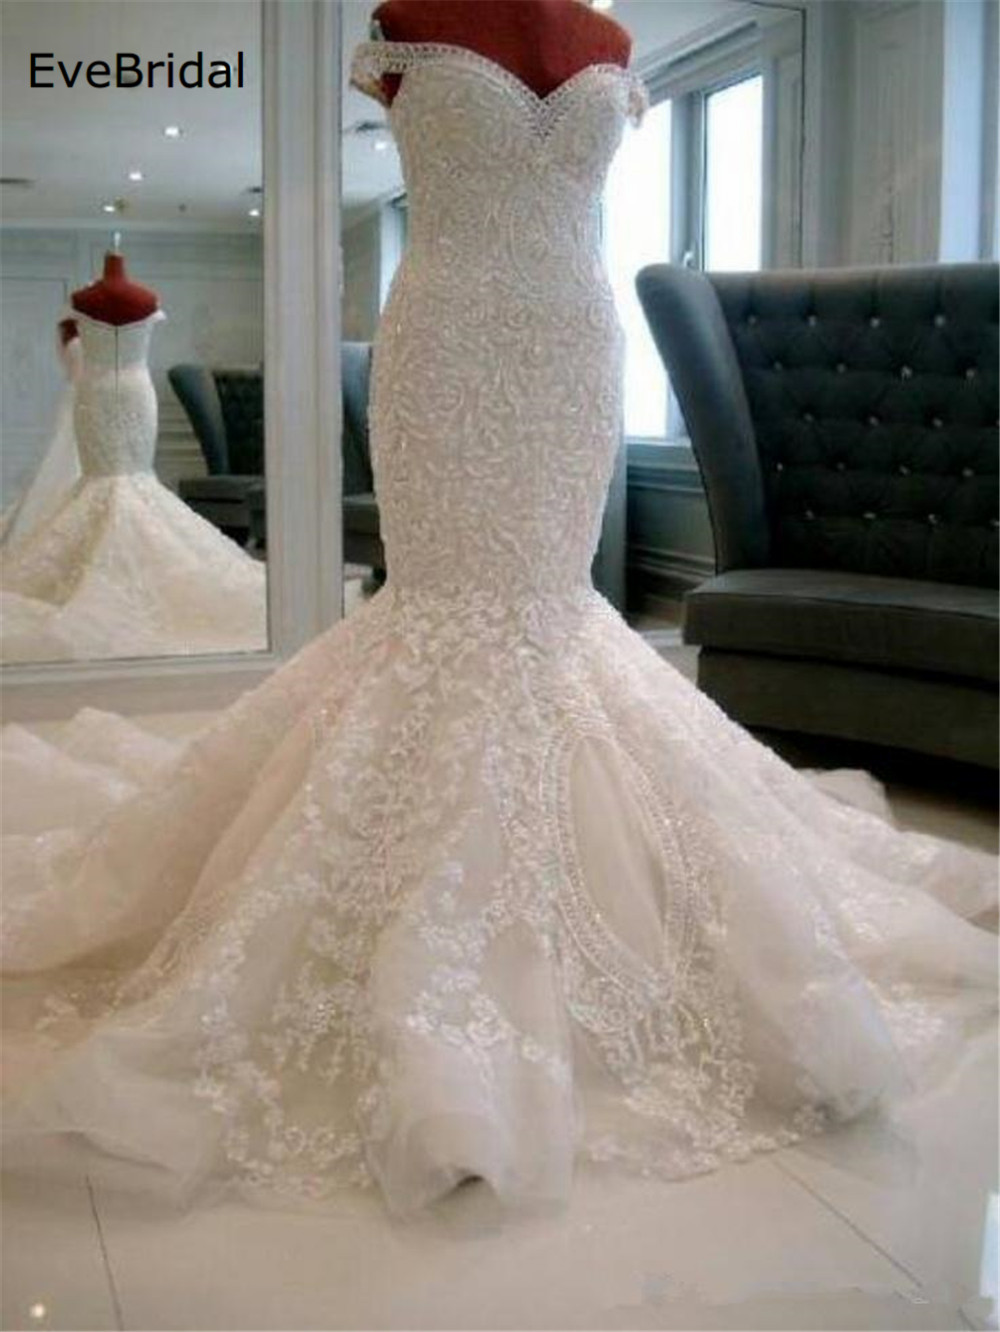 luxurious Mermaid Tulle Sweetheart Cap Sleeve Sequined Lace Applique Floor length Chapel Train Bridal Gown Wedding Dress in Wedding Dresses from Weddings Events